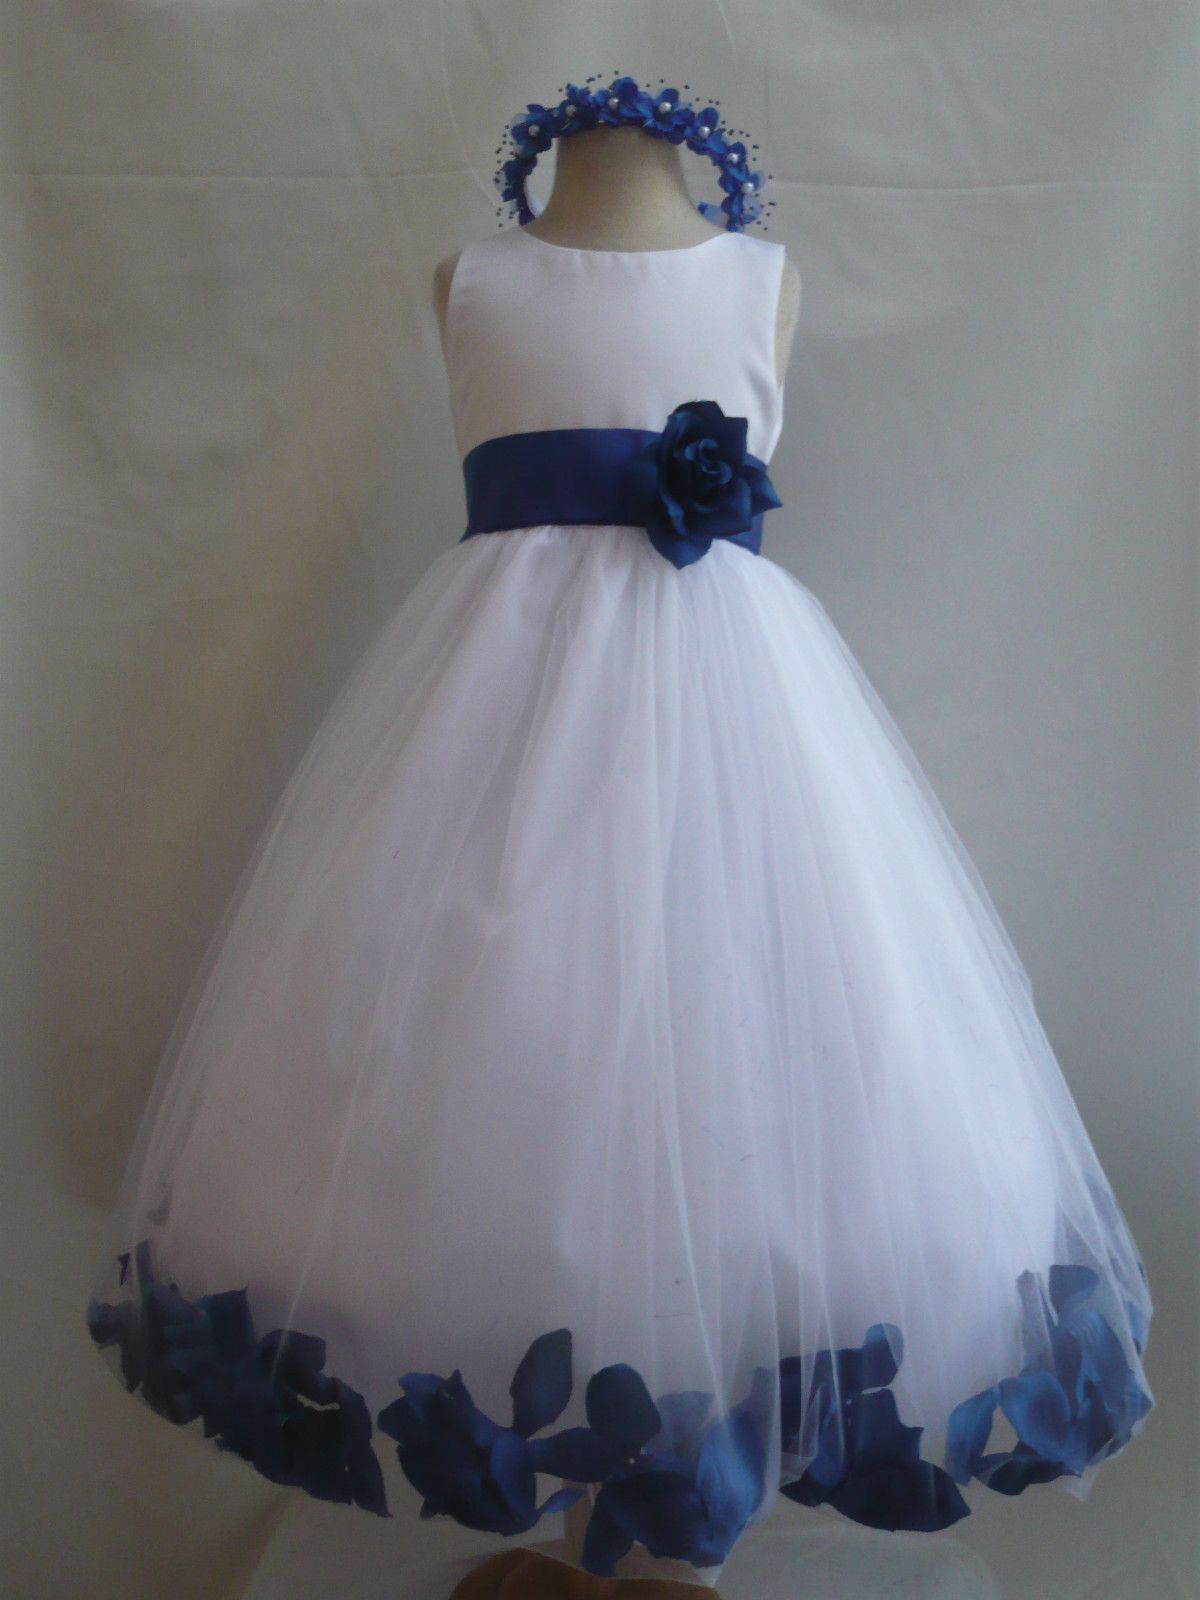 f00f205436d7 NWT WHITE ROYAL BLUE WEDDING FLOWER GIRL DRESSES 6-12-18-24MO 2 4 6 ...